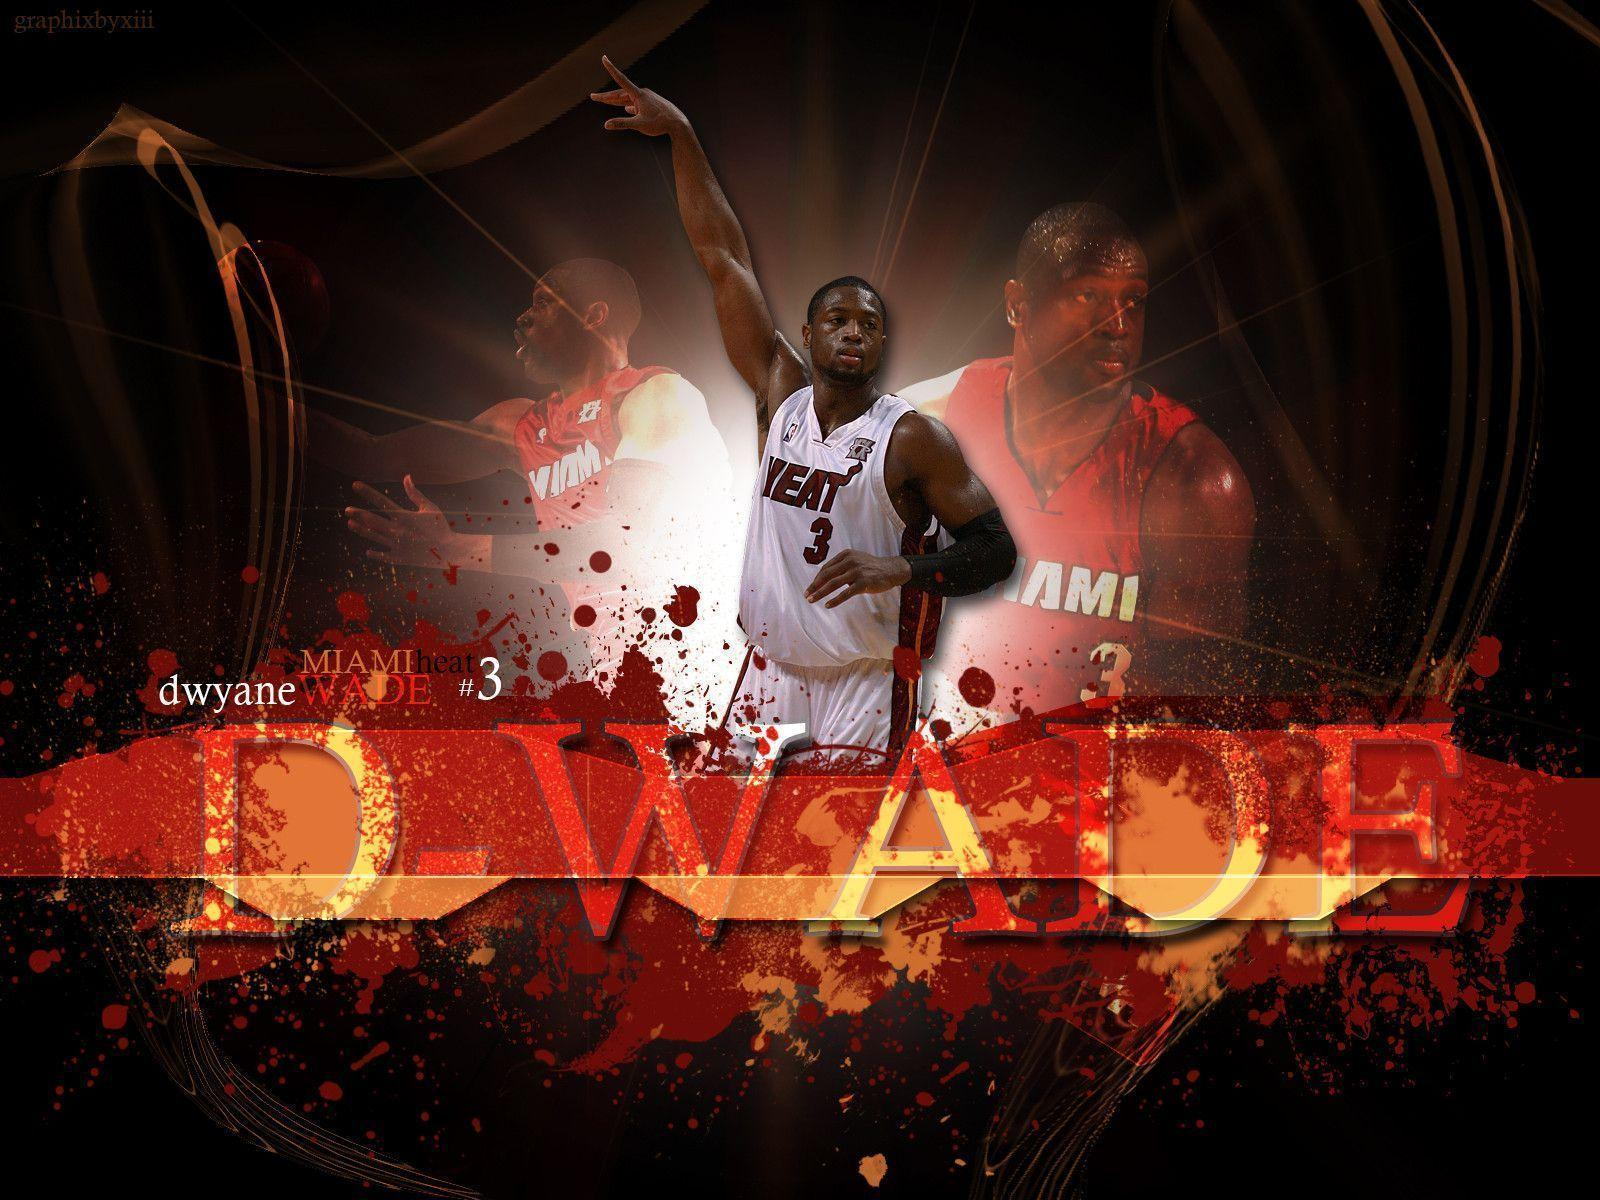 Dwyane Wade Wallpapers 6 194291 High Definition Wallpapers